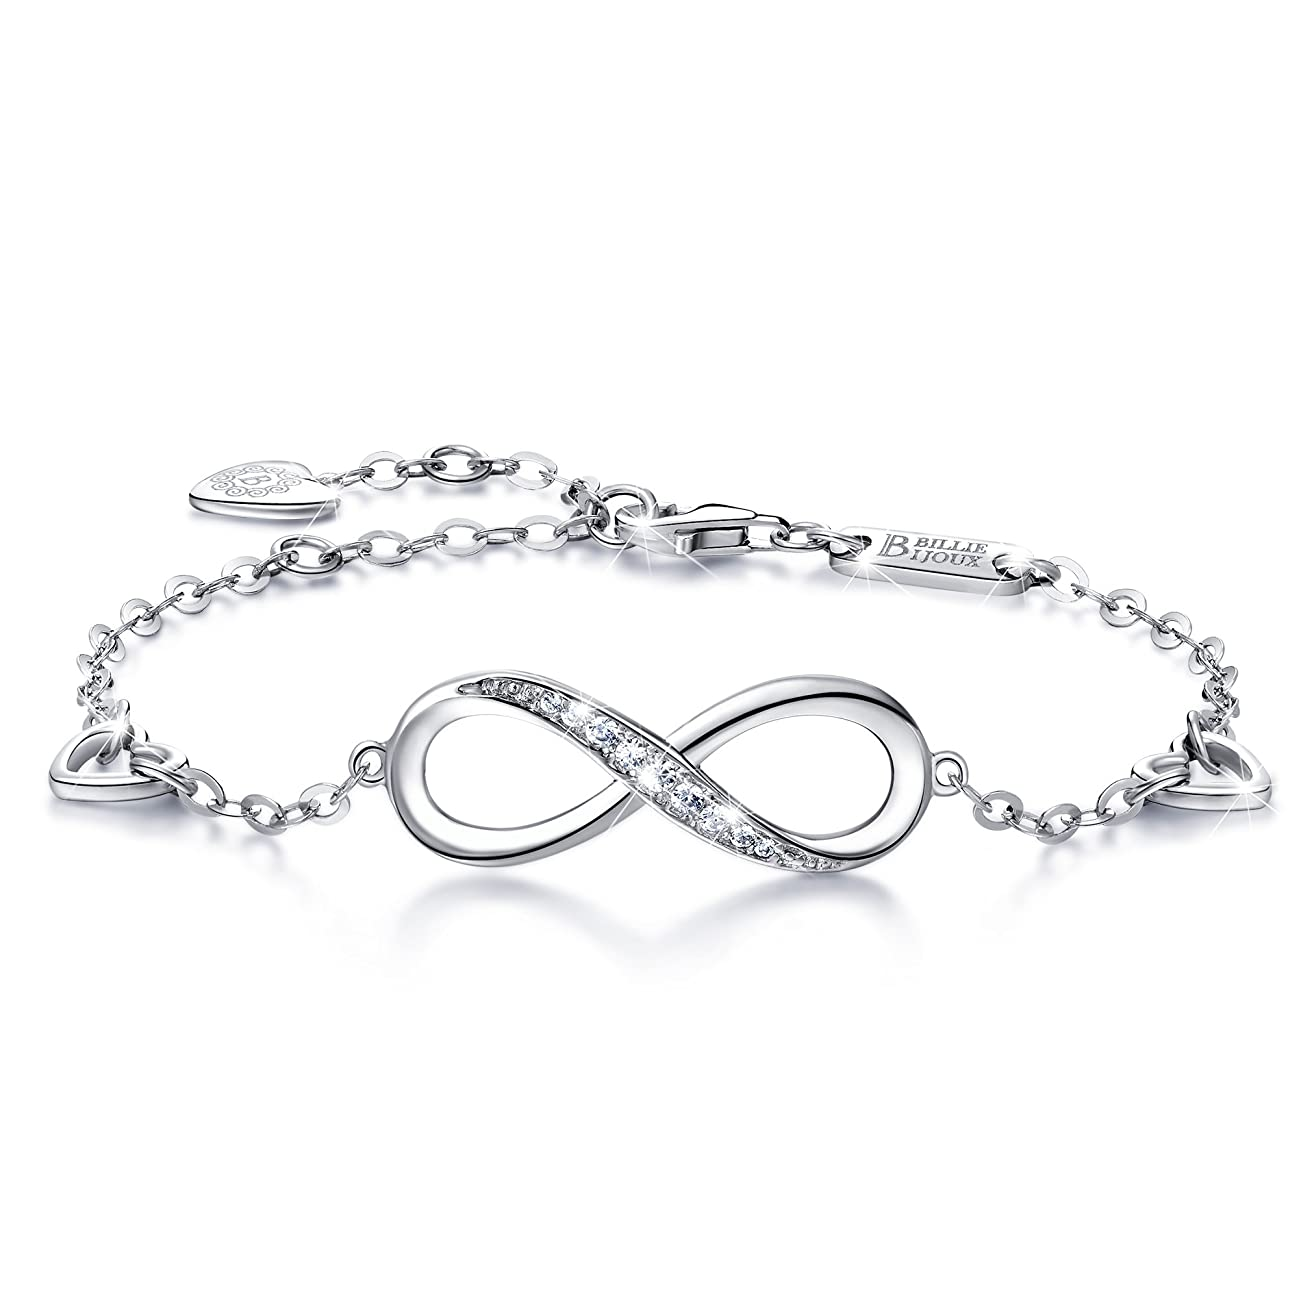 Billie Bijoux Womens 925 Sterling Silver Infinity Endless Love Symbol Charm Adjustable Bracelet for Women Mother's Day